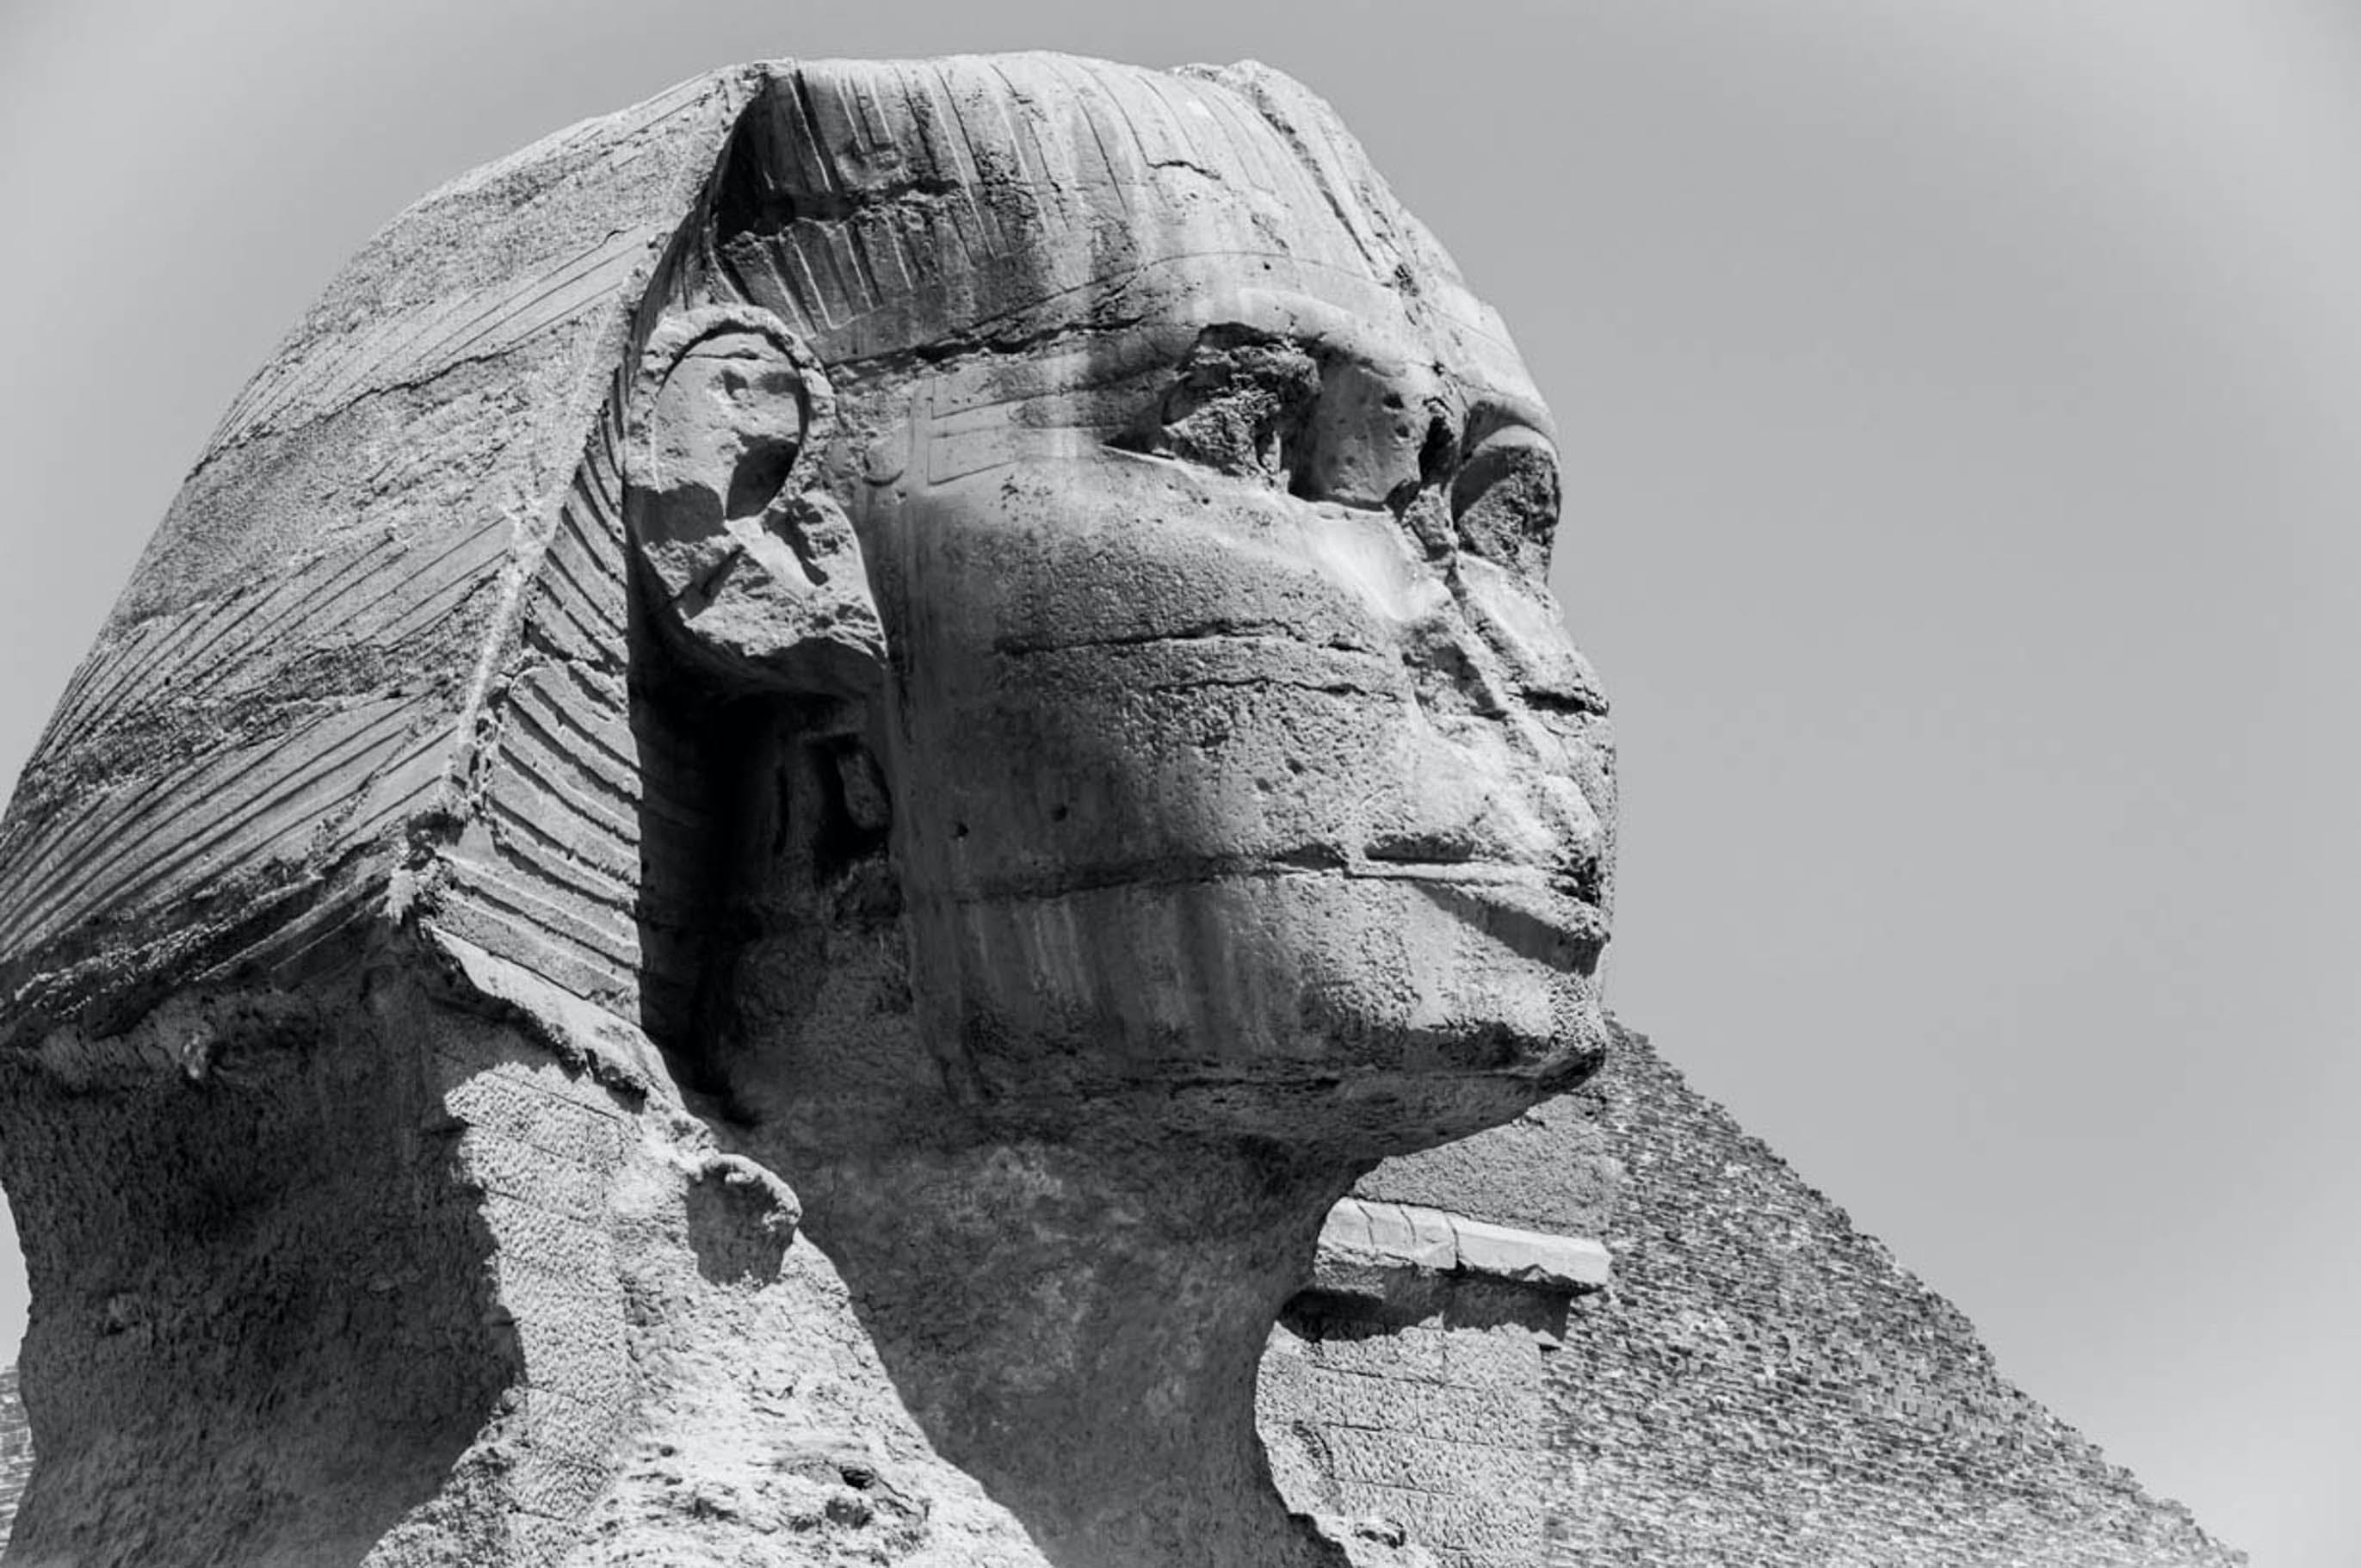 Grayscale Photo of the Great Sphinx of Giza